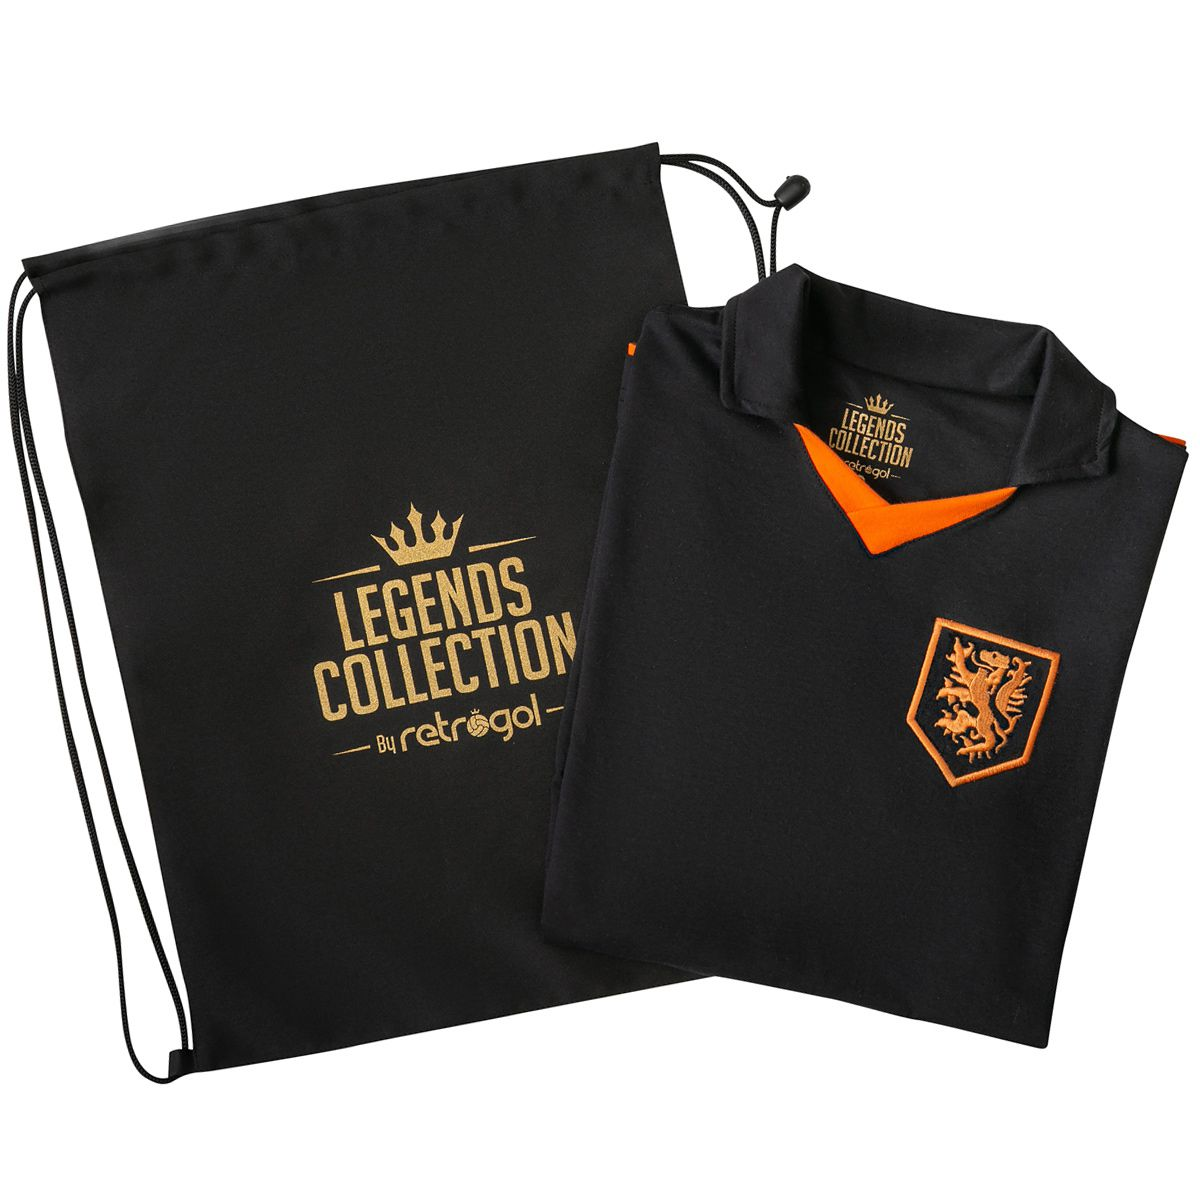 Camisa Holanda Retrô Legends Collection Preta + Sacola